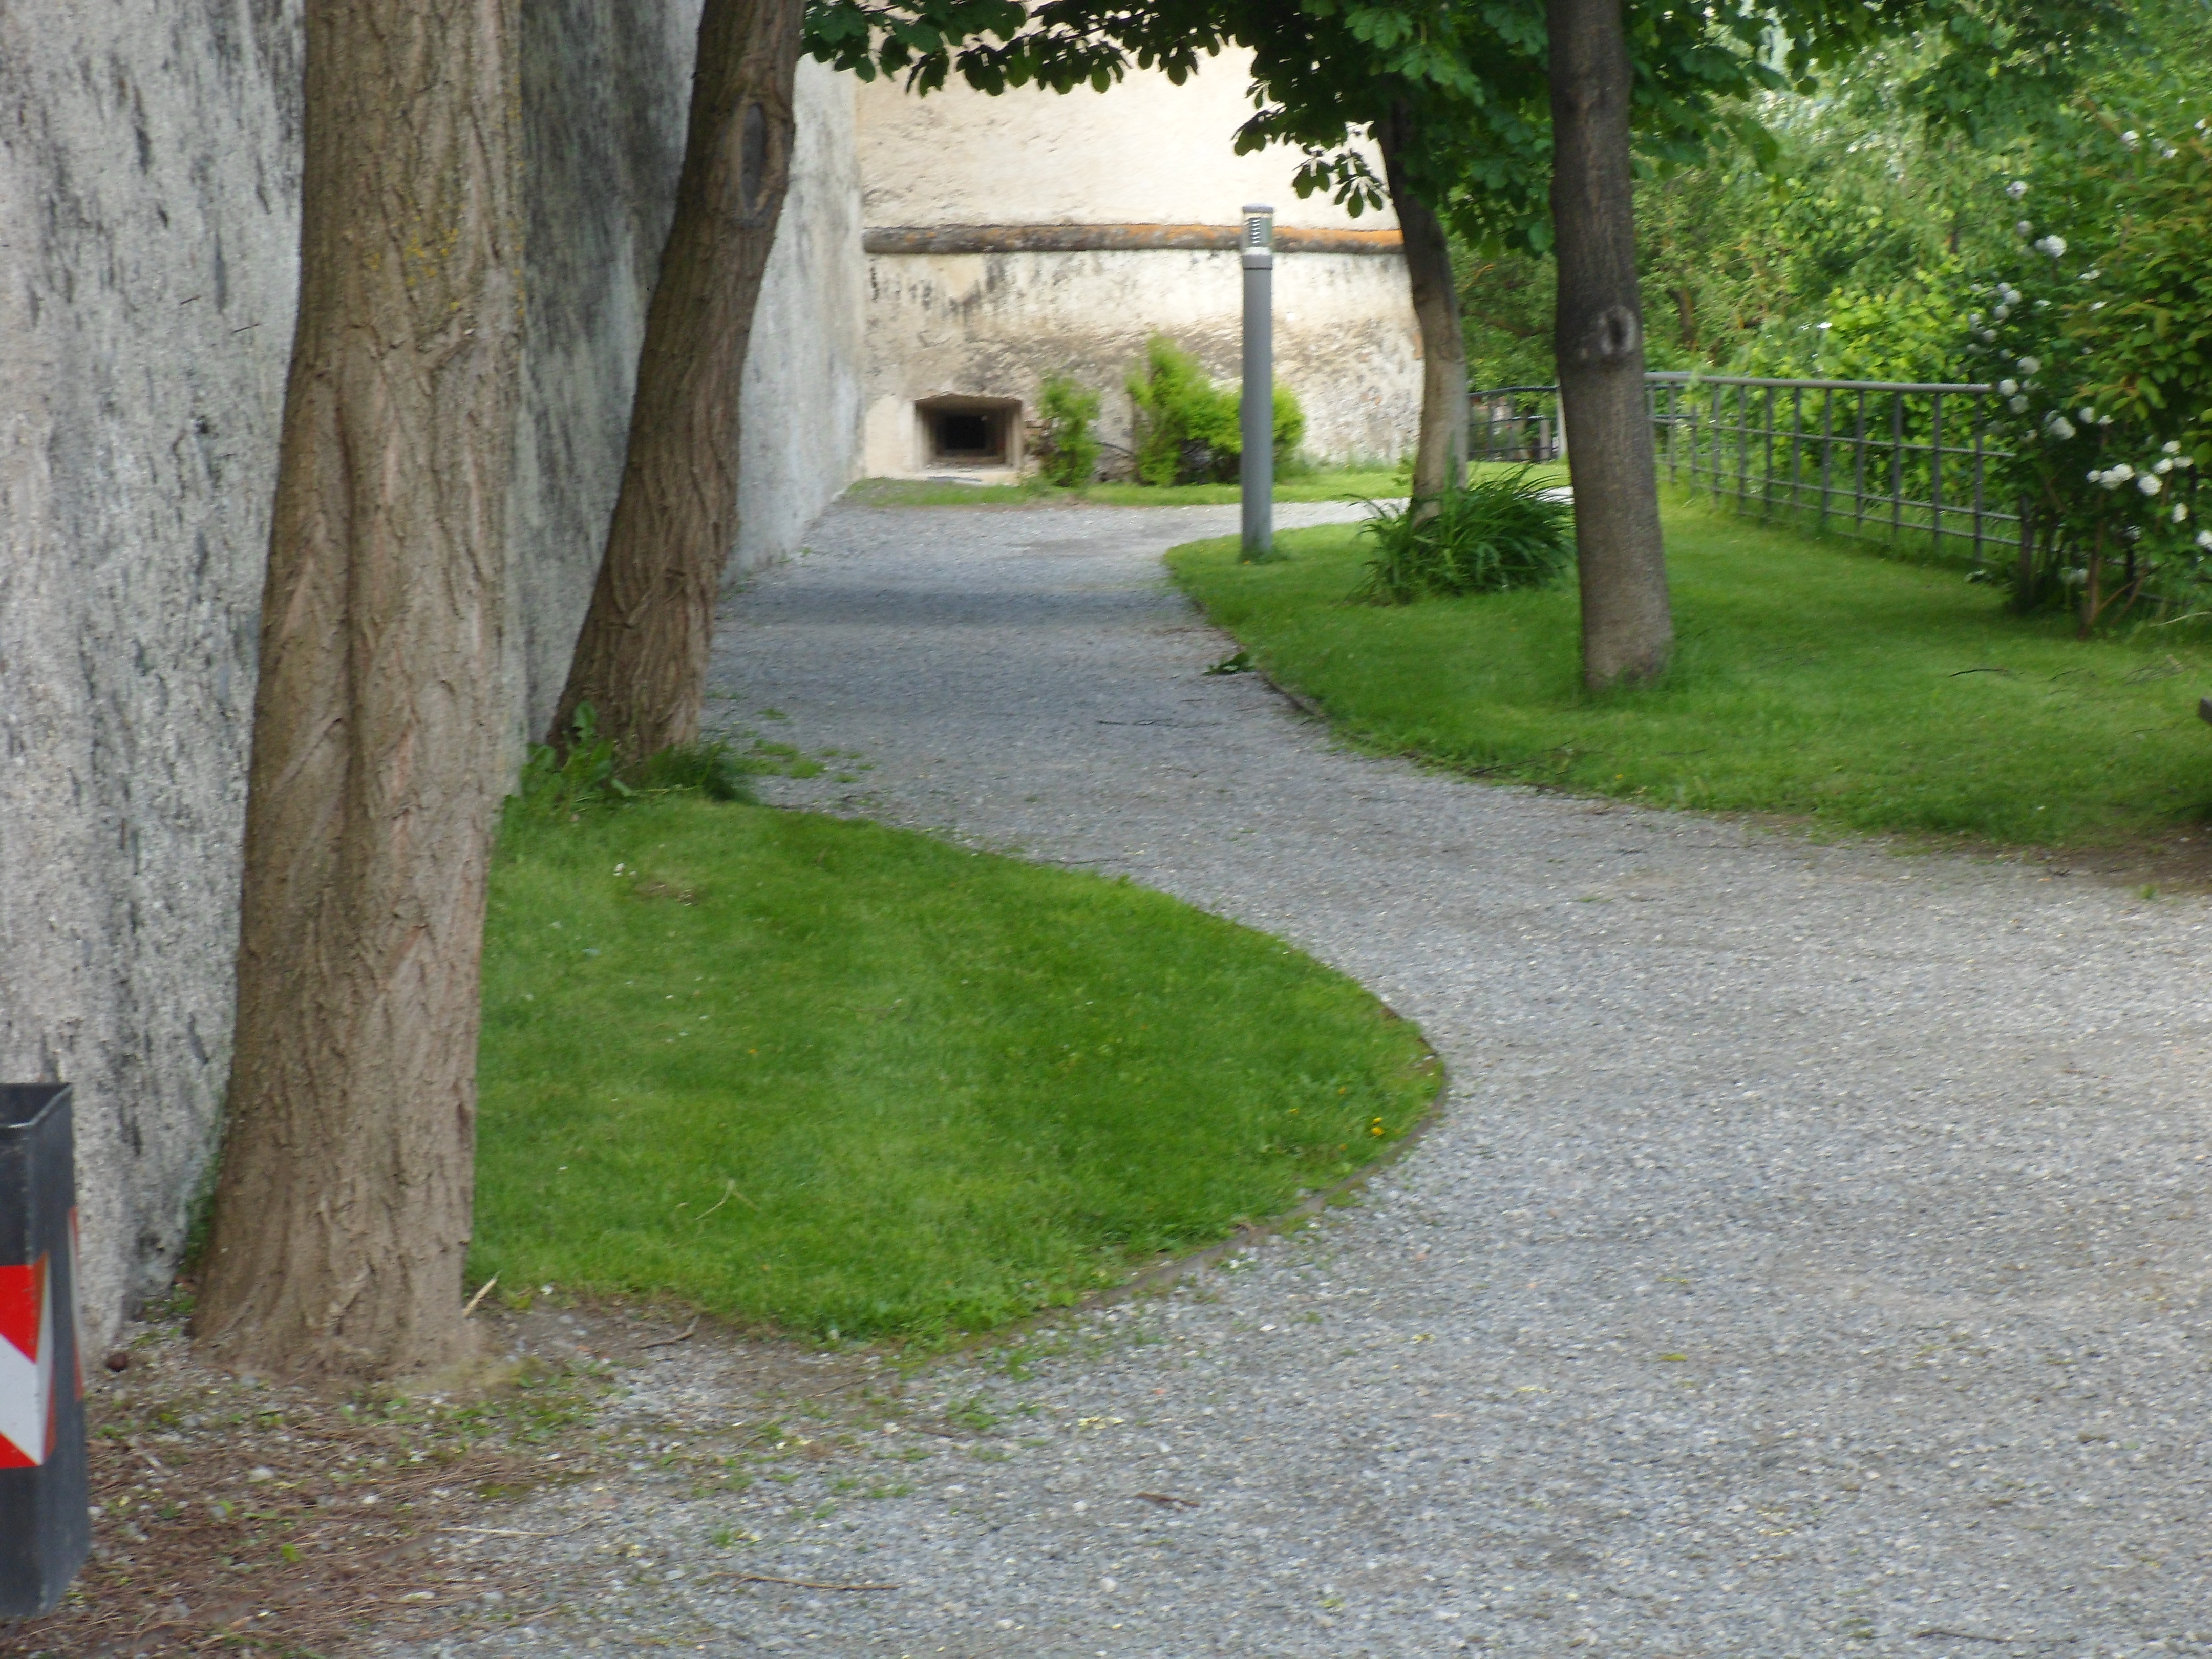 Gravel path along the base of a stone wall leading up to a round tower with a square loophole in it just above ground level.